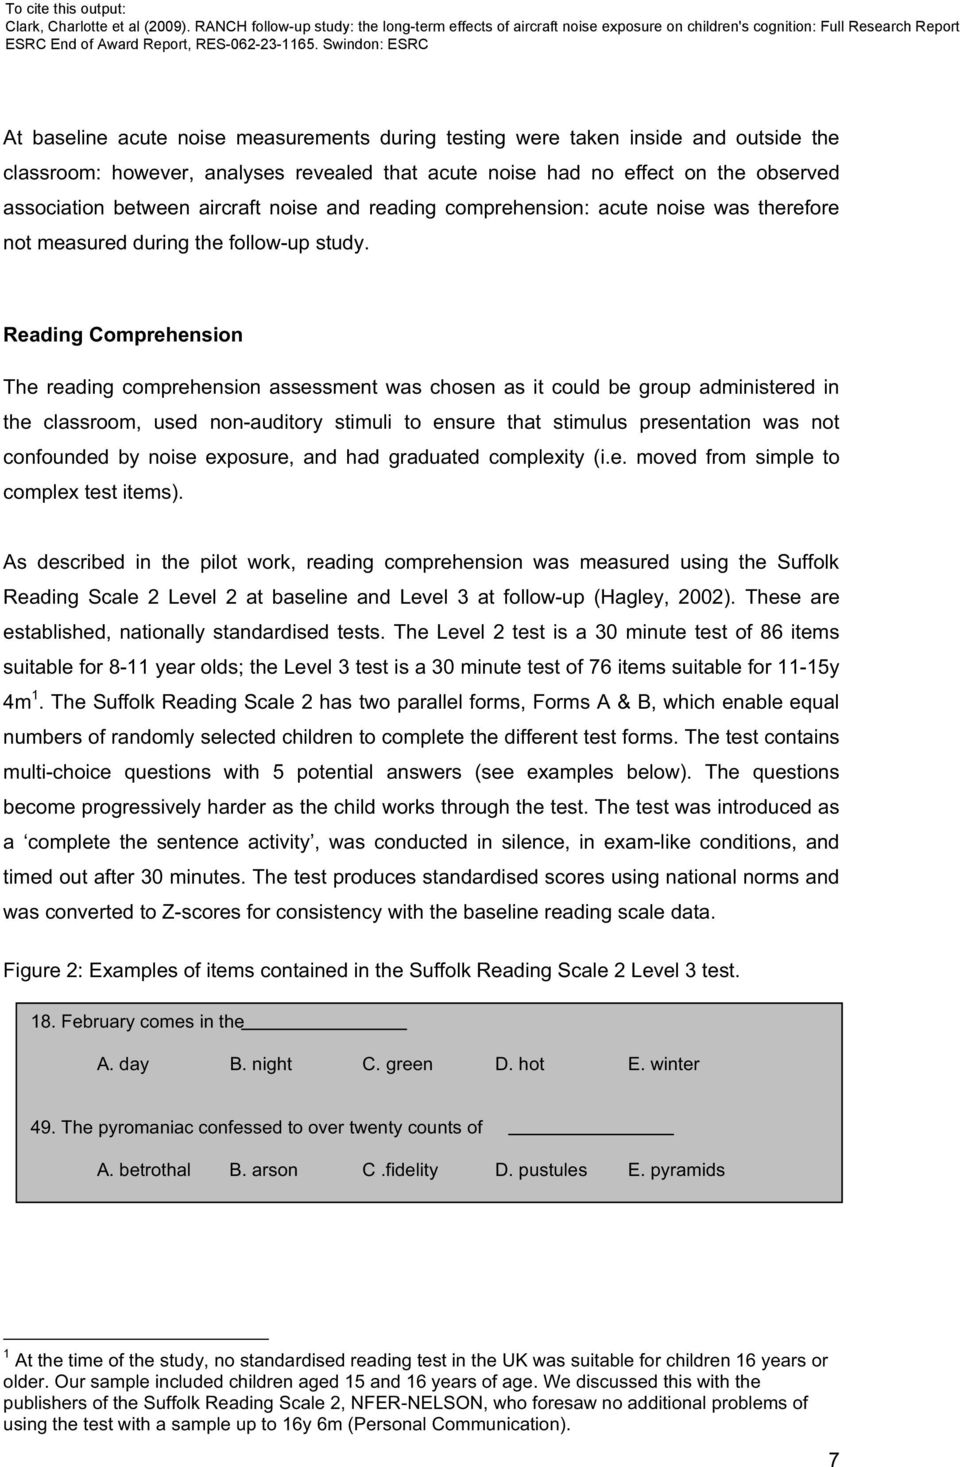 Reading Comprehension The reading comprehension assessment was chosen as it could be group administered in the classroom, used non-auditory stimuli to ensure that stimulus presentation was not